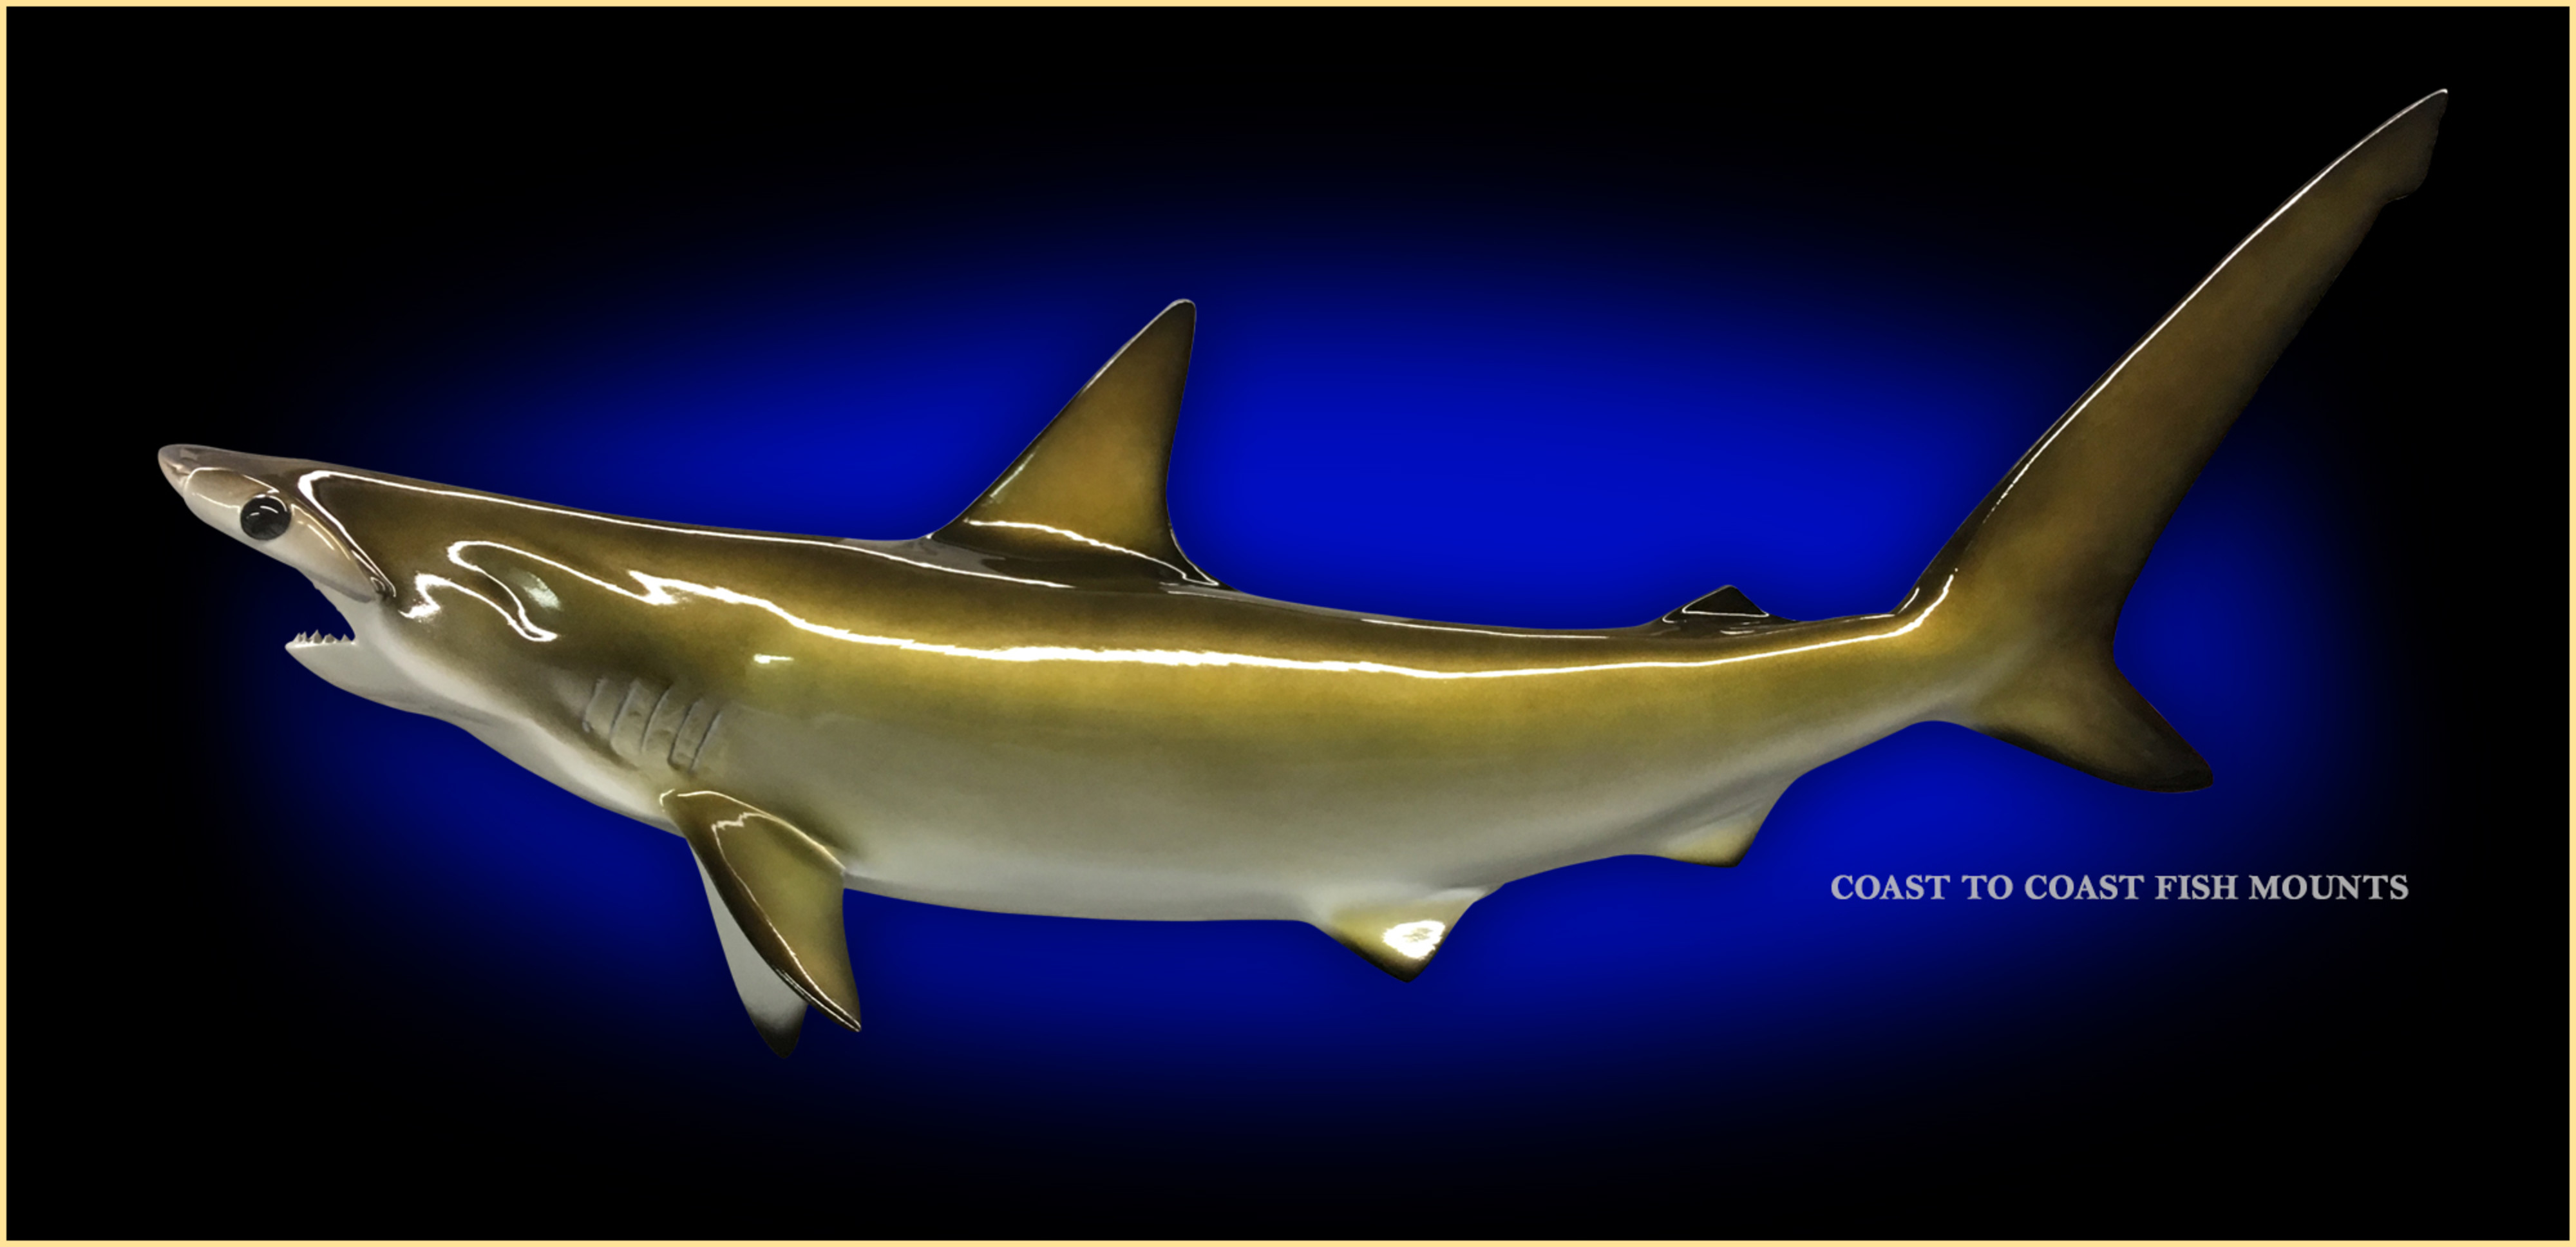 Hammerhead shark fish mount and fish replicas coast to coast hammerhead shark fish mount thecheapjerseys Image collections